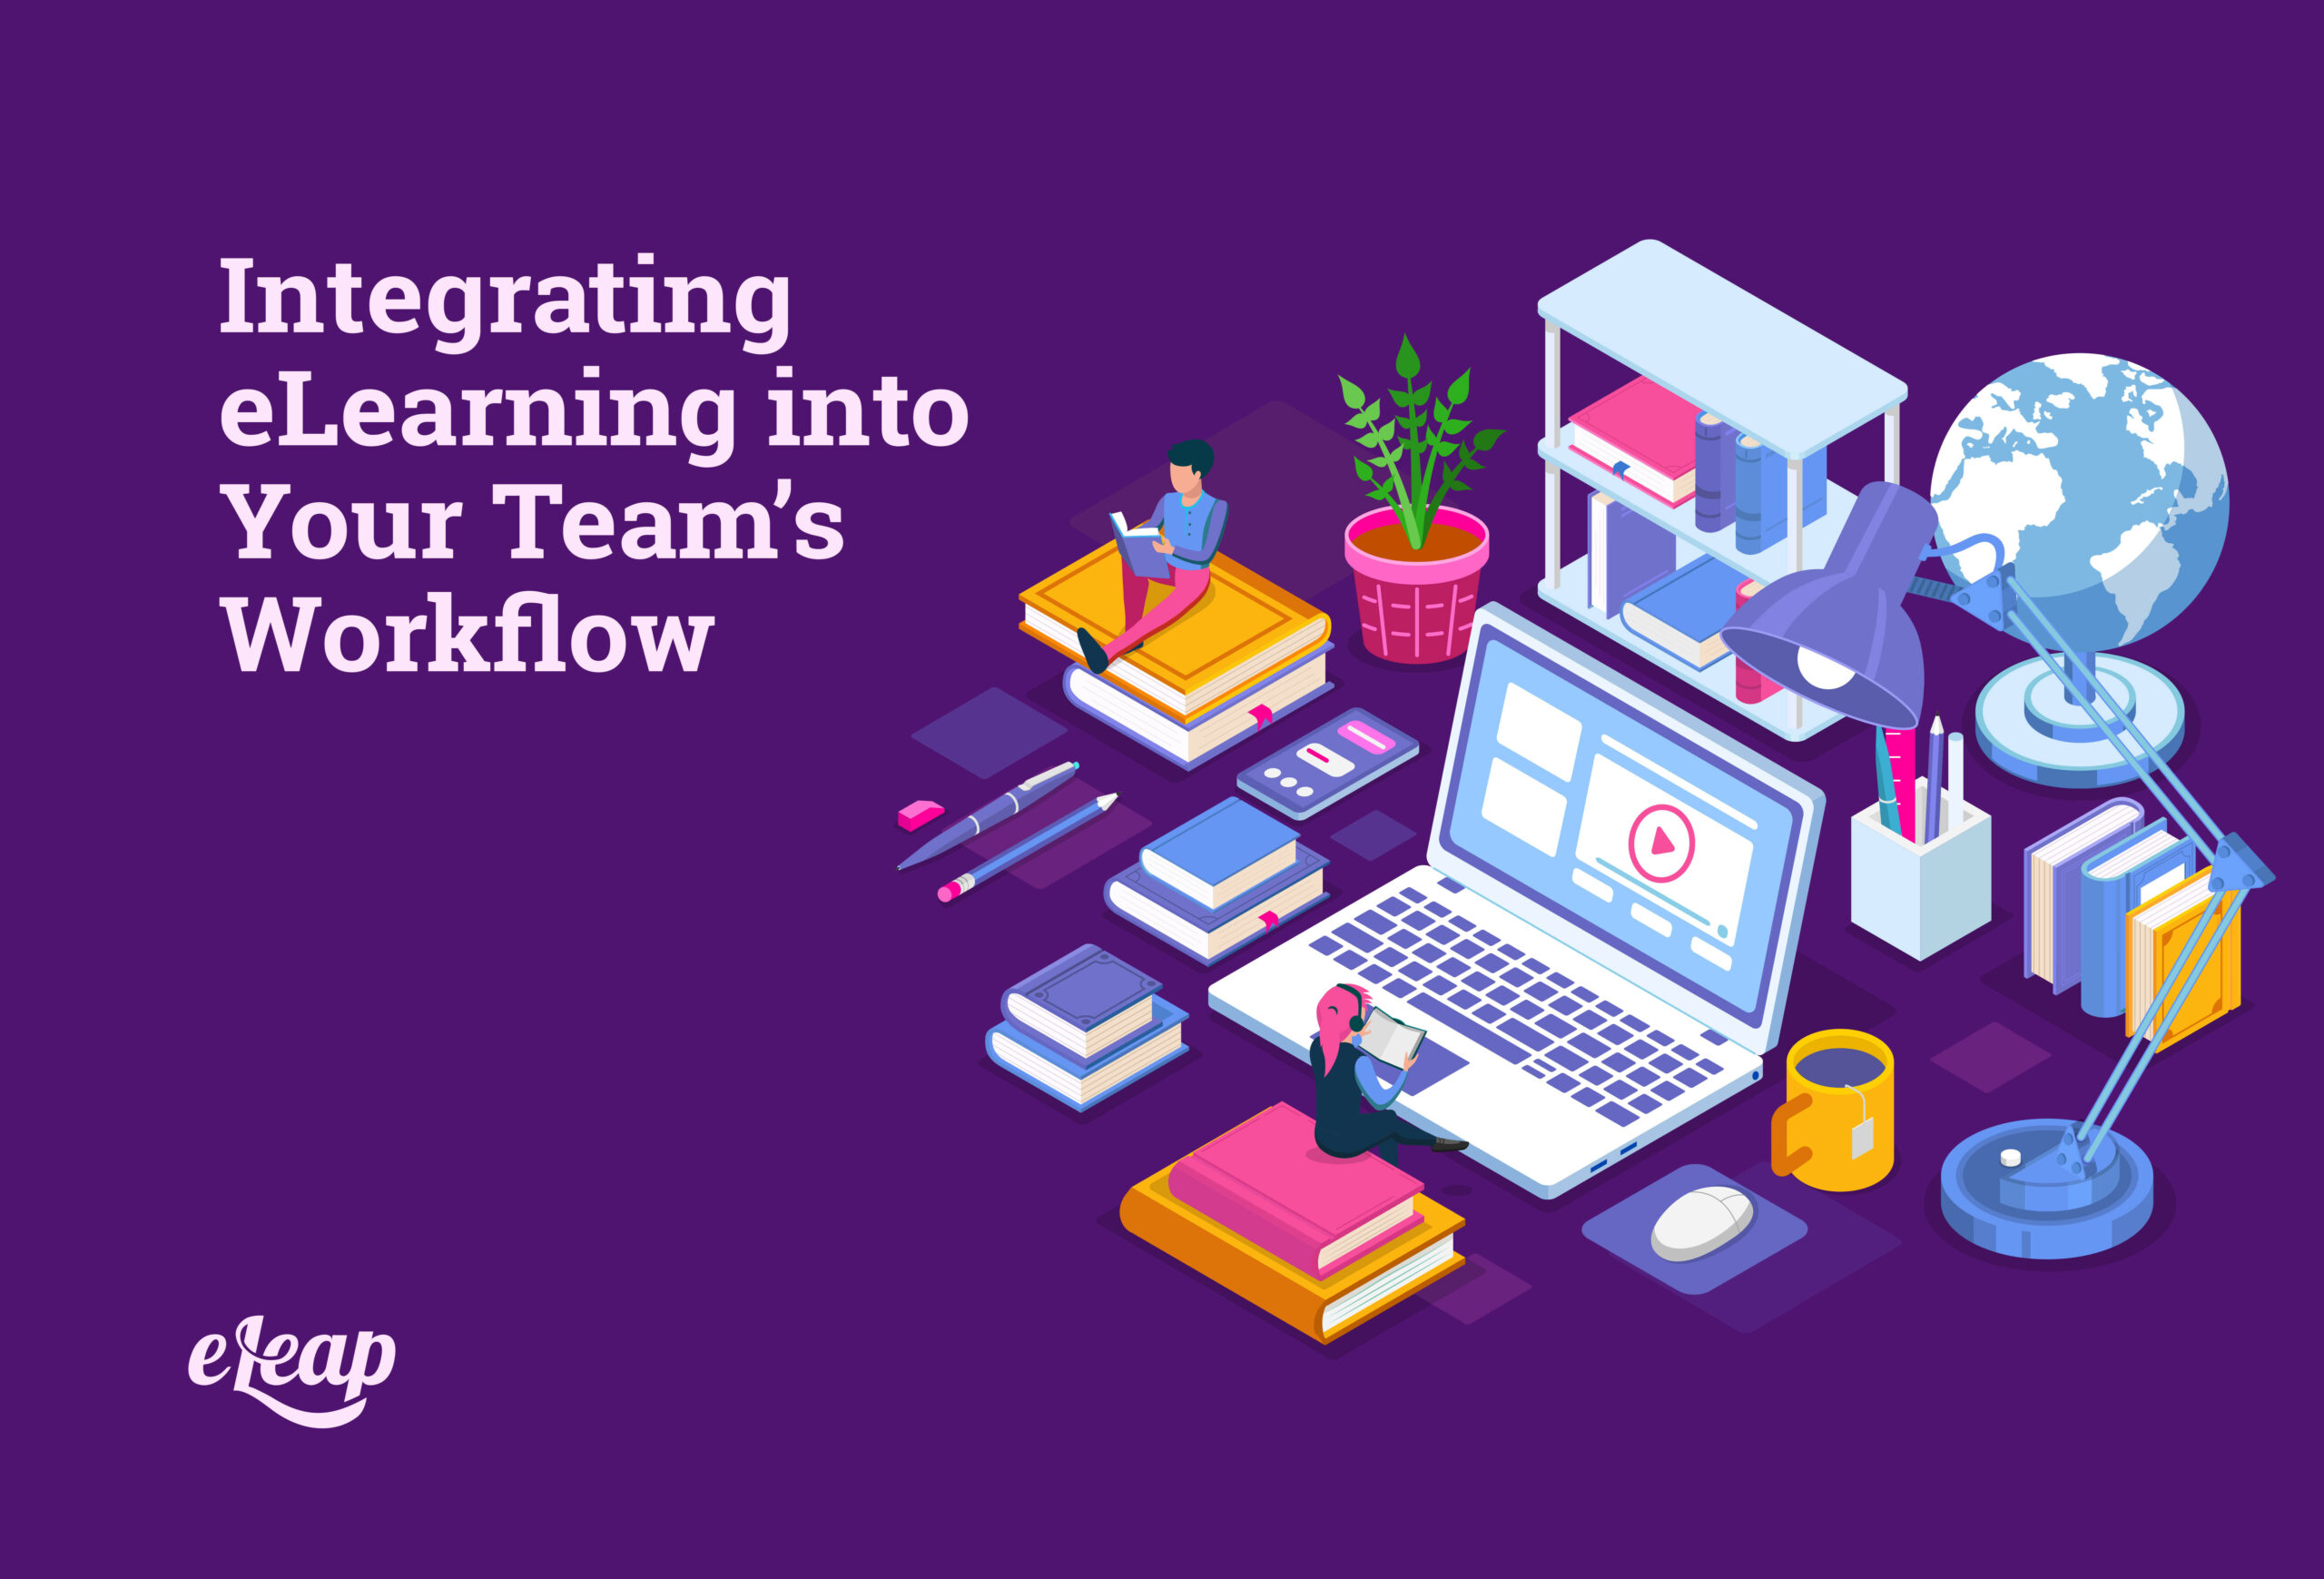 Integrating eLearning into Your Team's Workflow